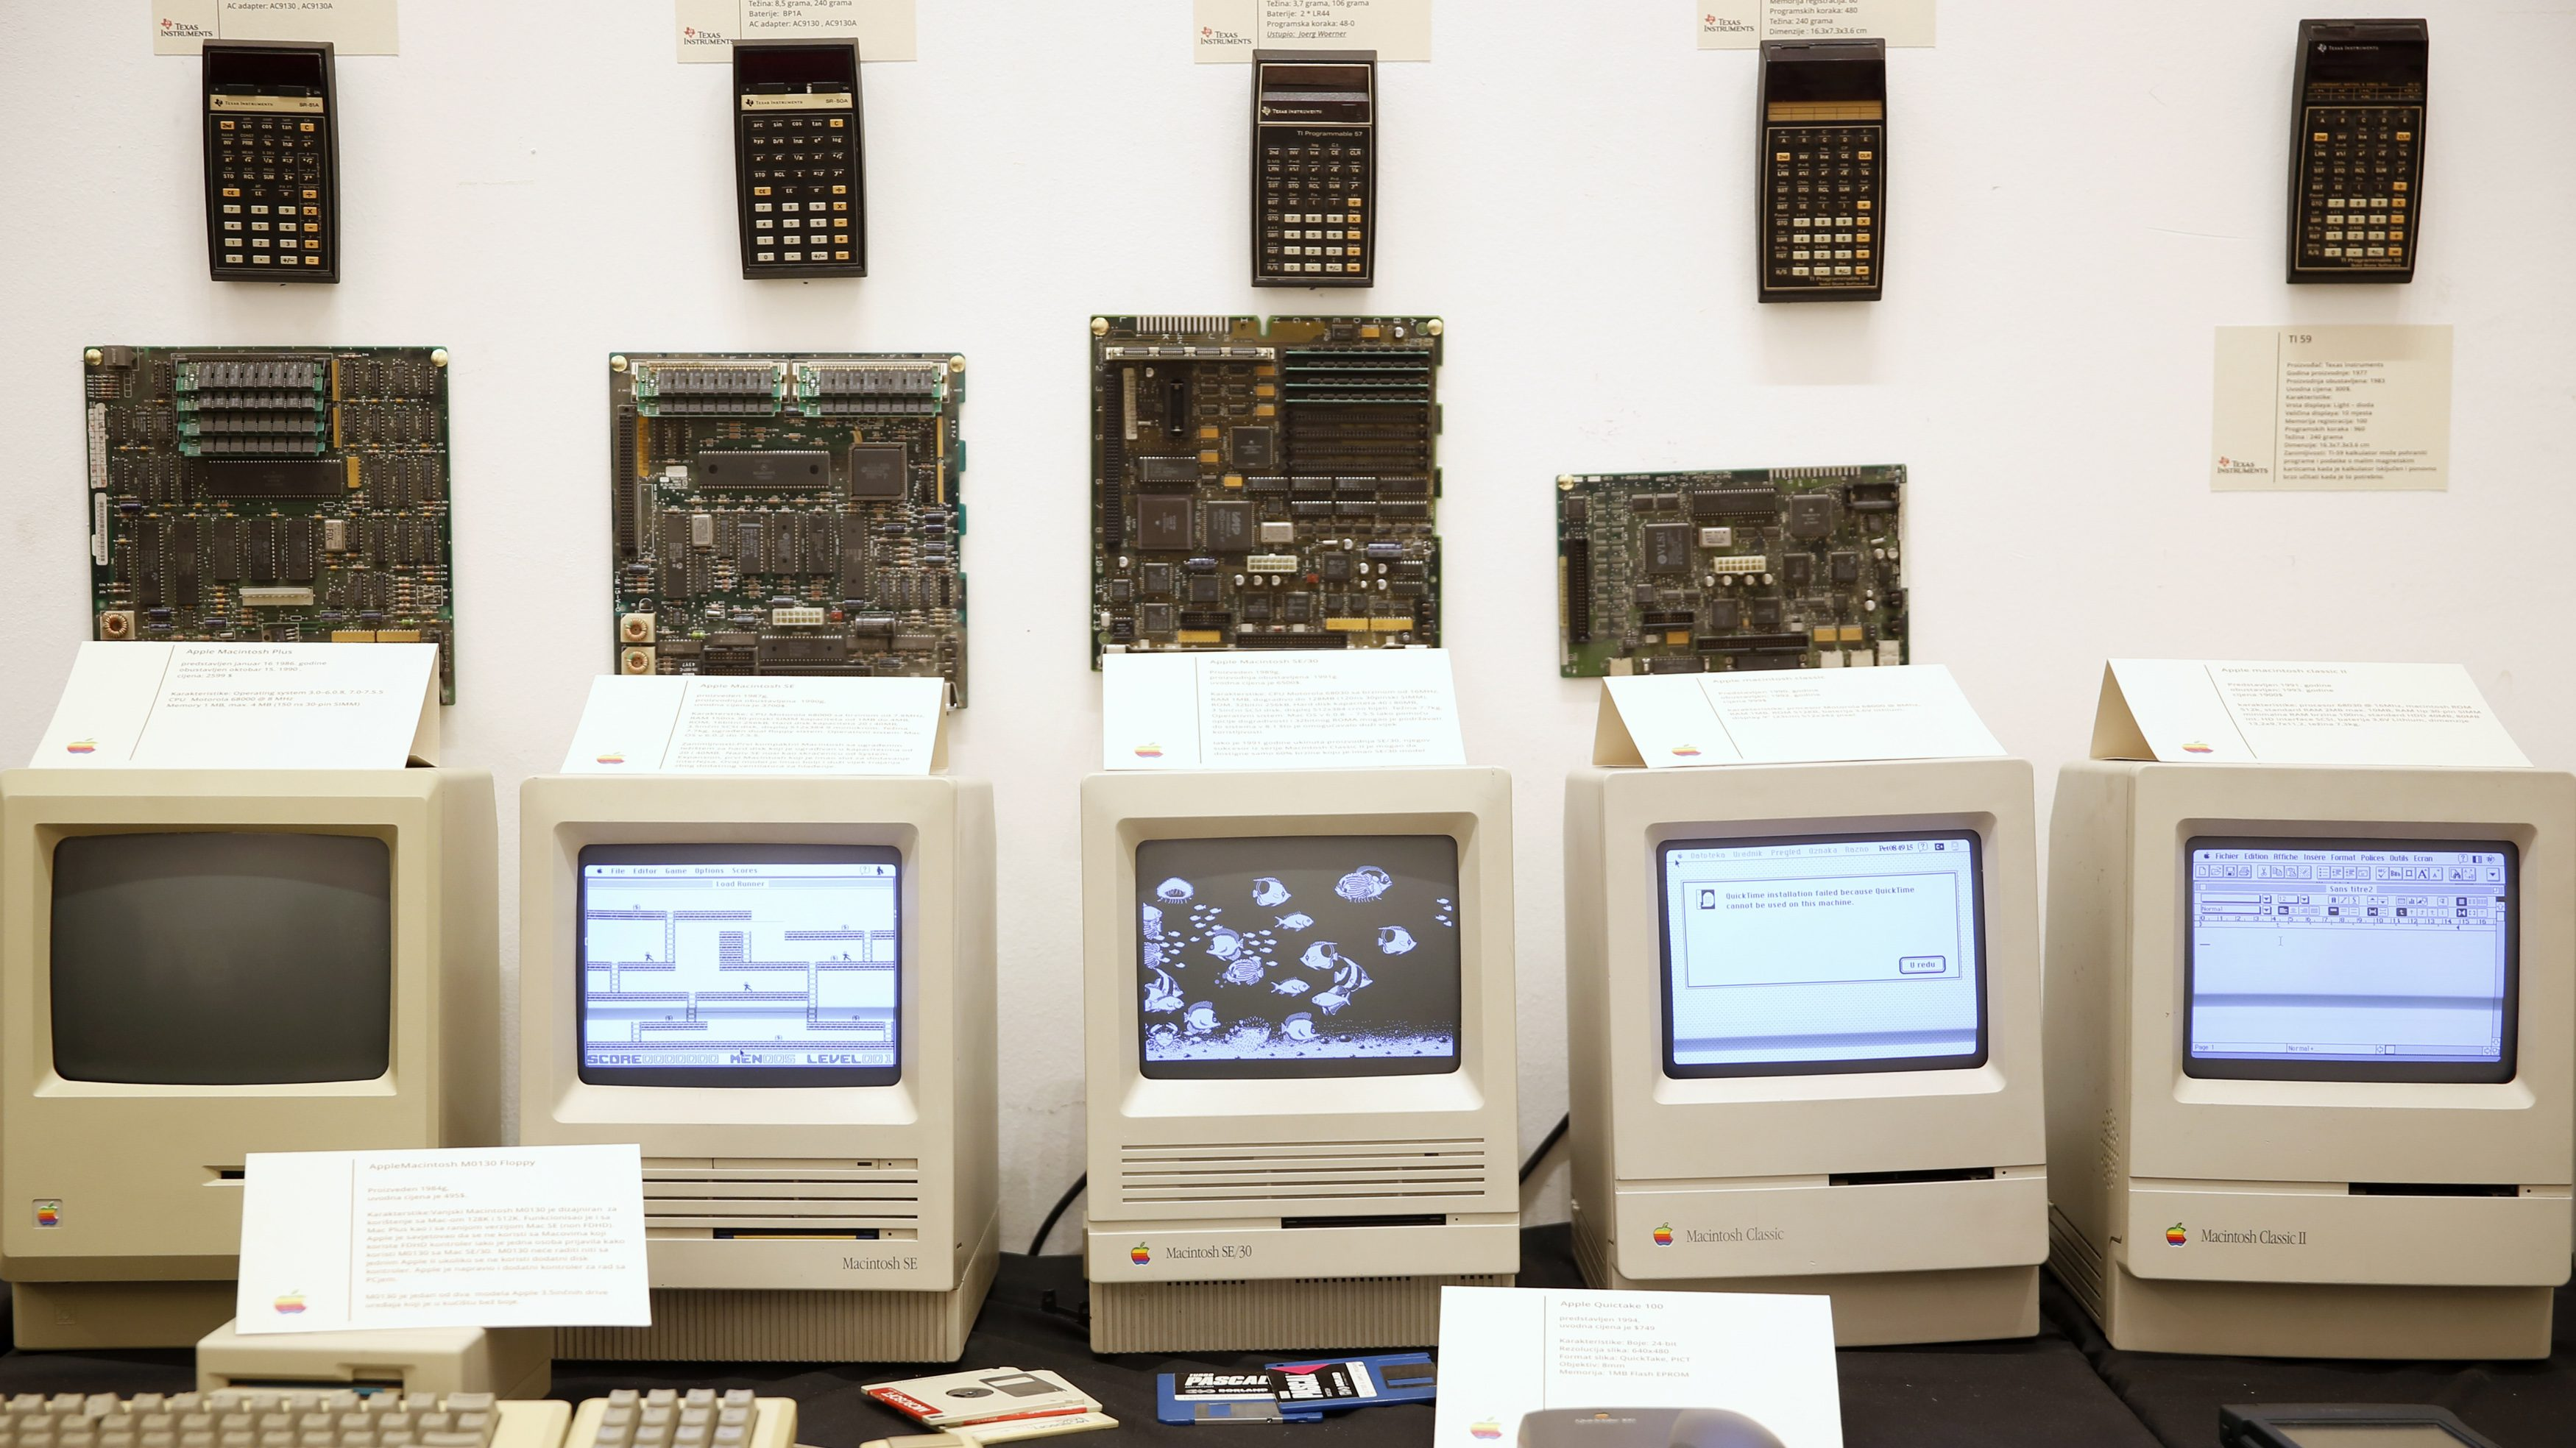 """Apple's Macintosh motherboards and computers together with calculators are displayed during the """"History of Computers"""" exhibition in Sarajevo November 30, 2013. 110 computers from the 1970s to 2008 are displayed during the exhibition, ahead of the opening of the Sarajevo museum of old computers."""